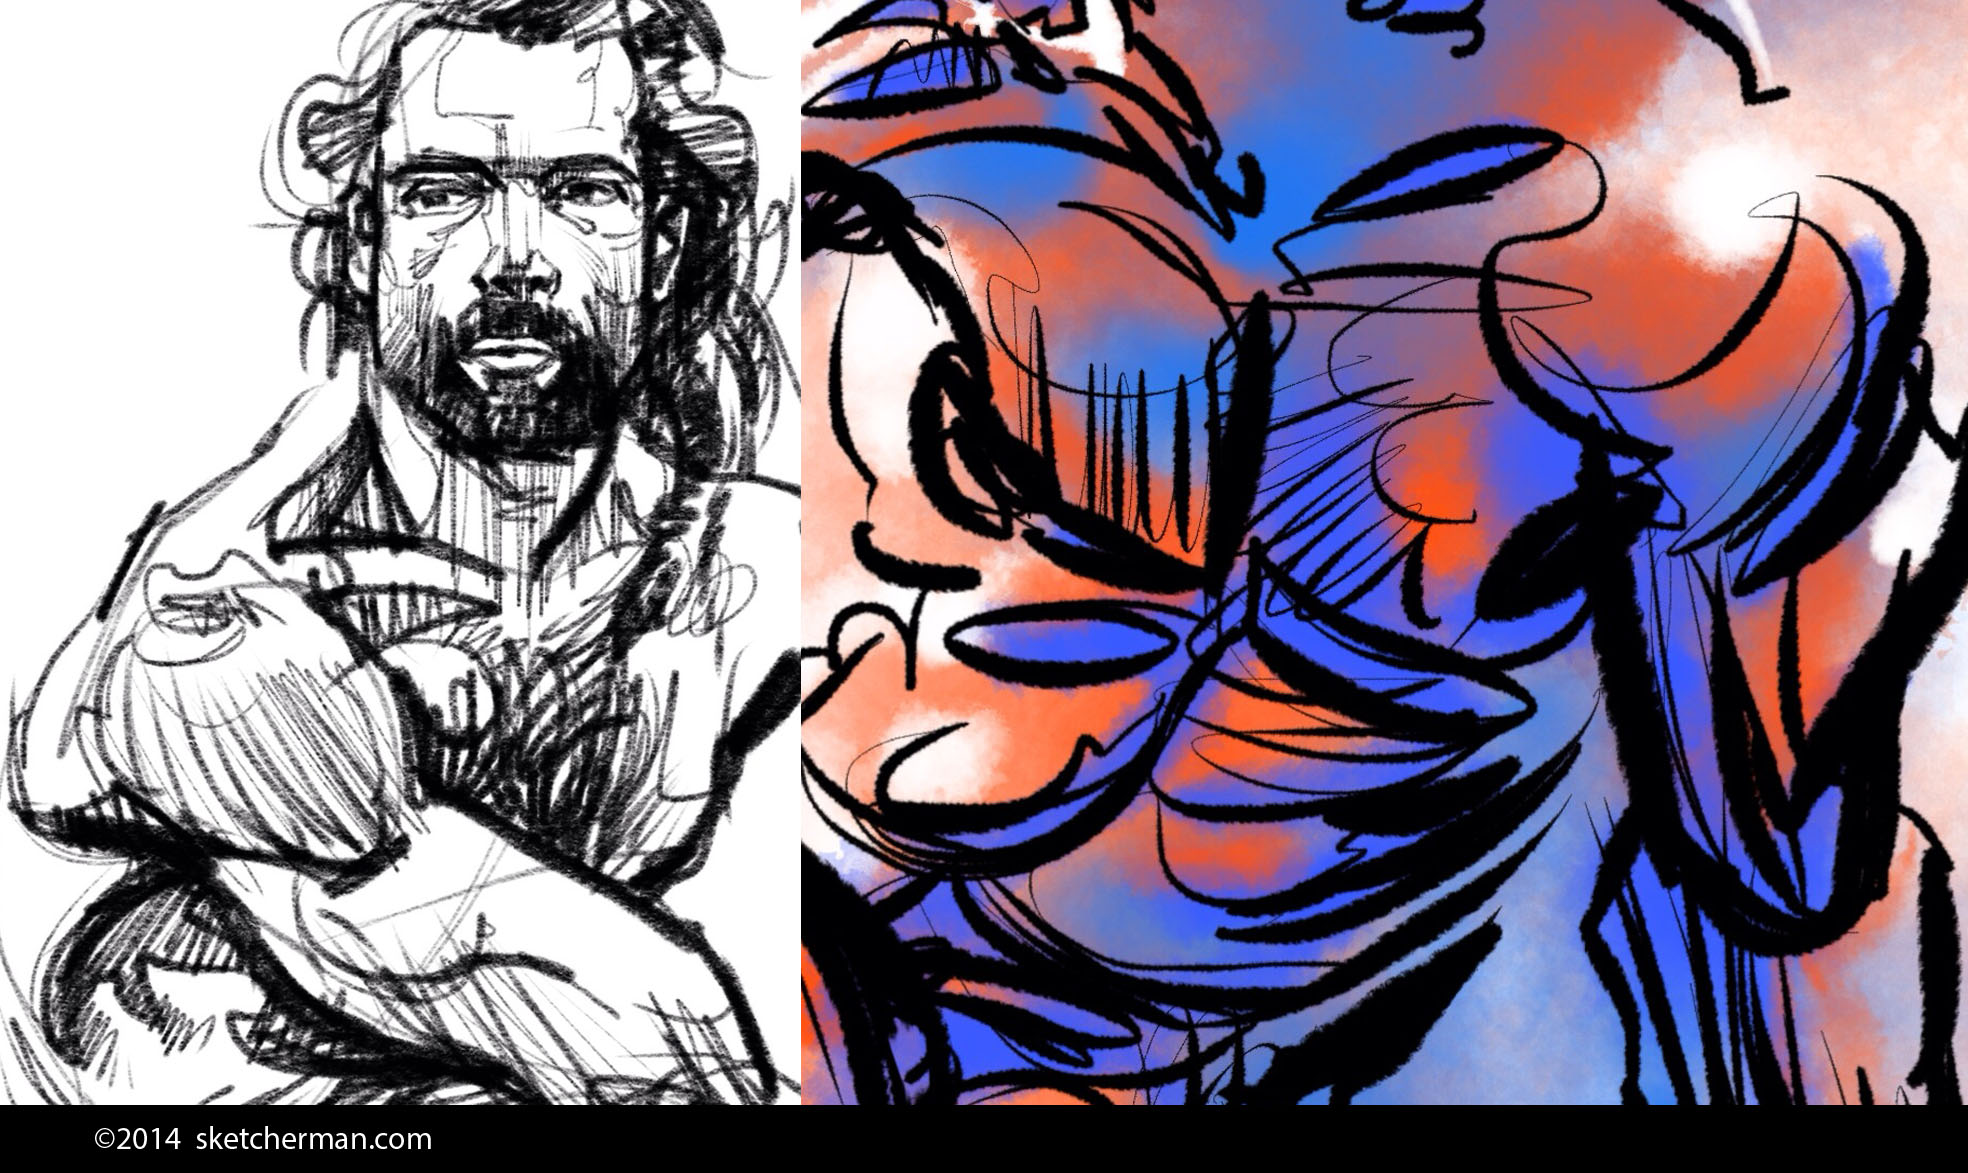 The sketches above give you an idea of what's possible. Tools used: Pencil tool on the left, and Ink Bleed + Water Brush tools on the right. All of them came with Procreate, but I modified the settings to suit my preferences.